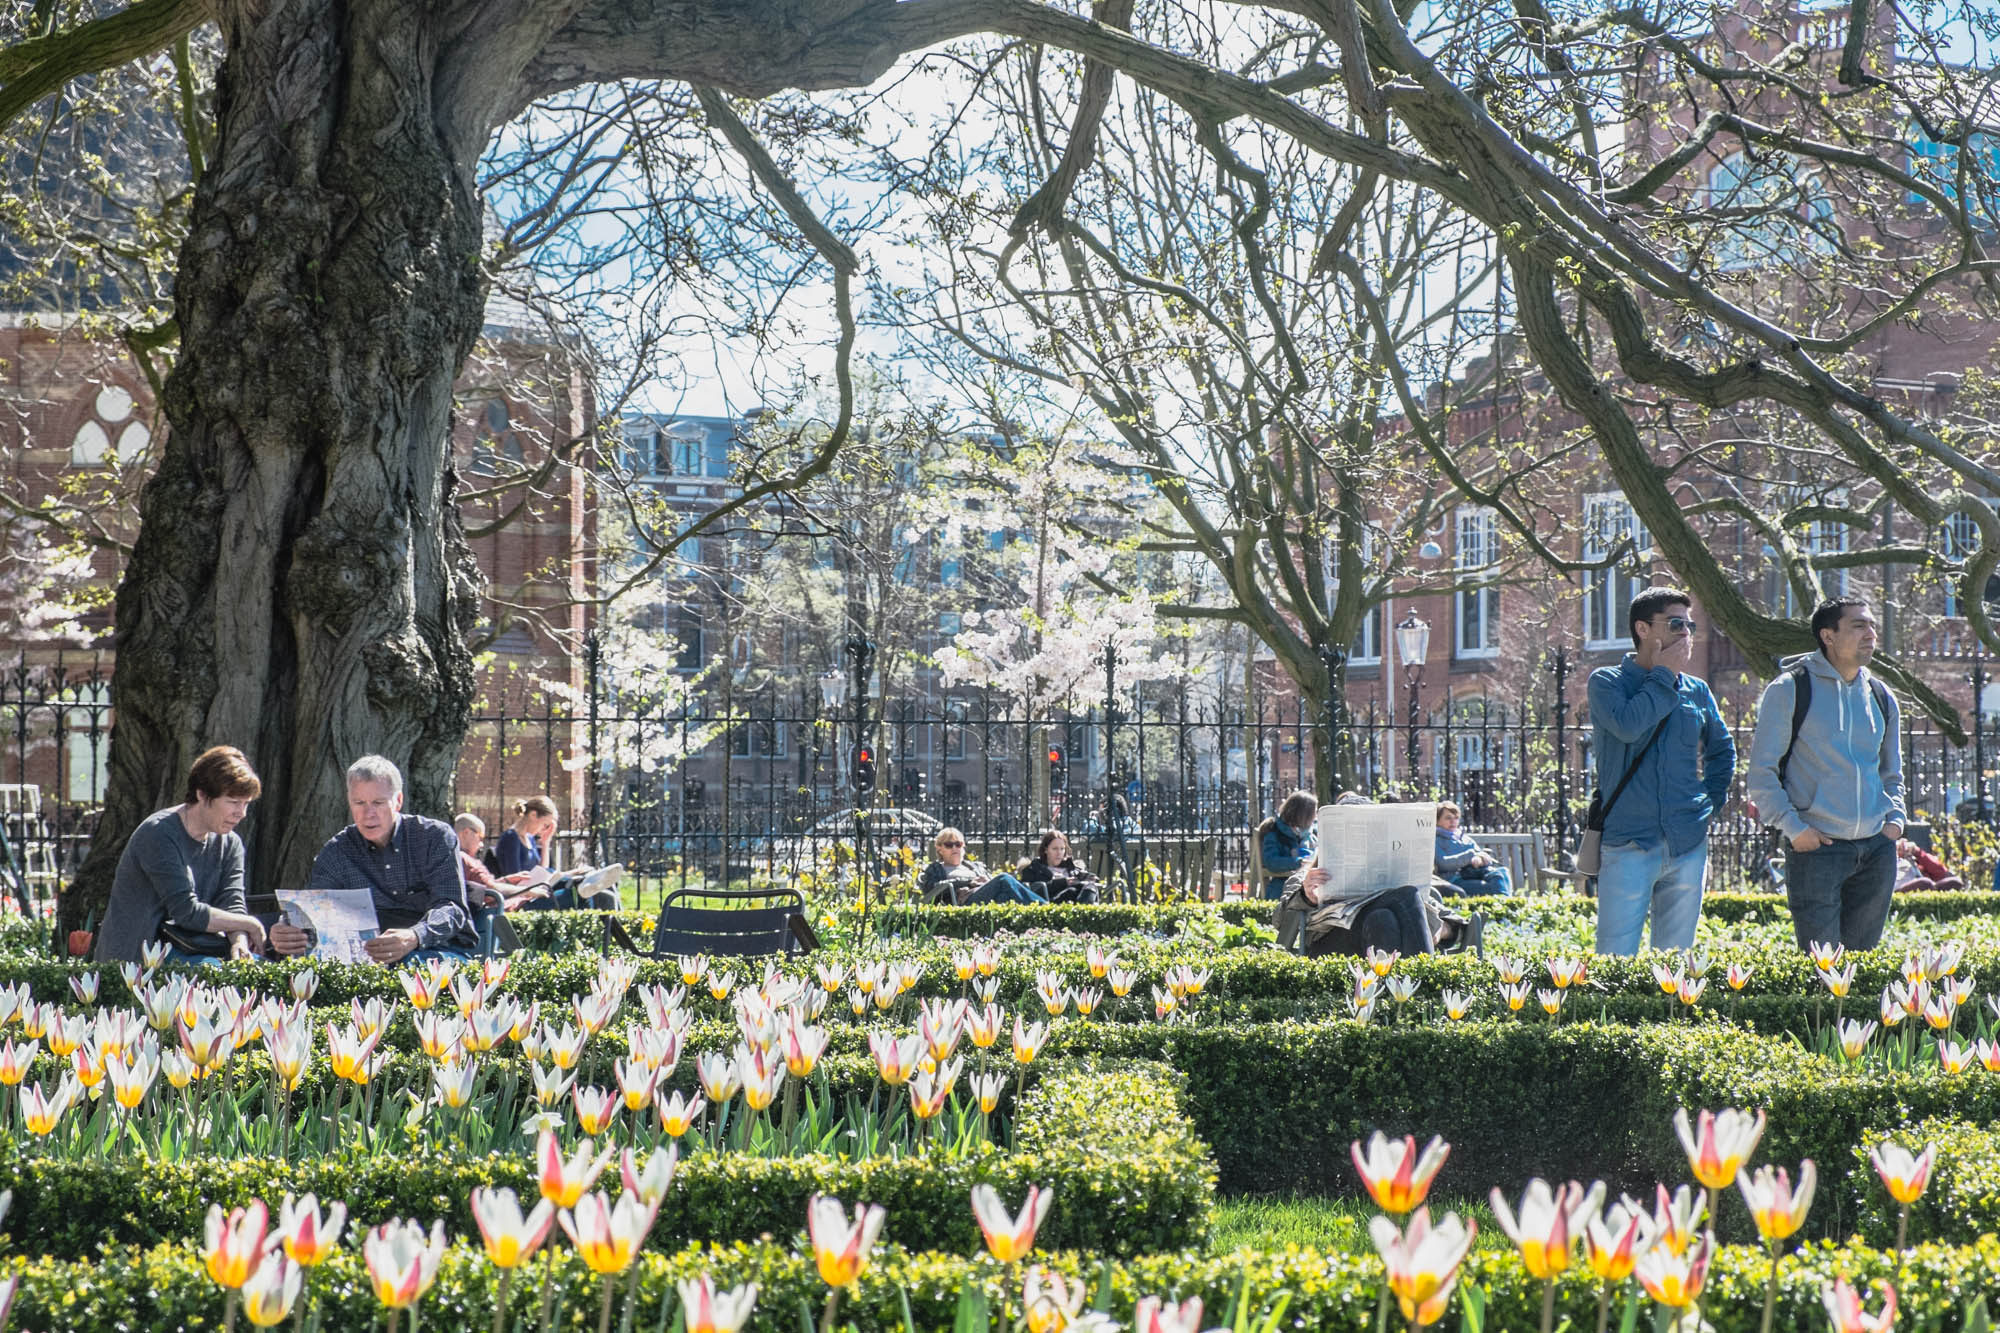 Rijksmuseum garden. Pretty compact yet centrally located within the museum quarter area.